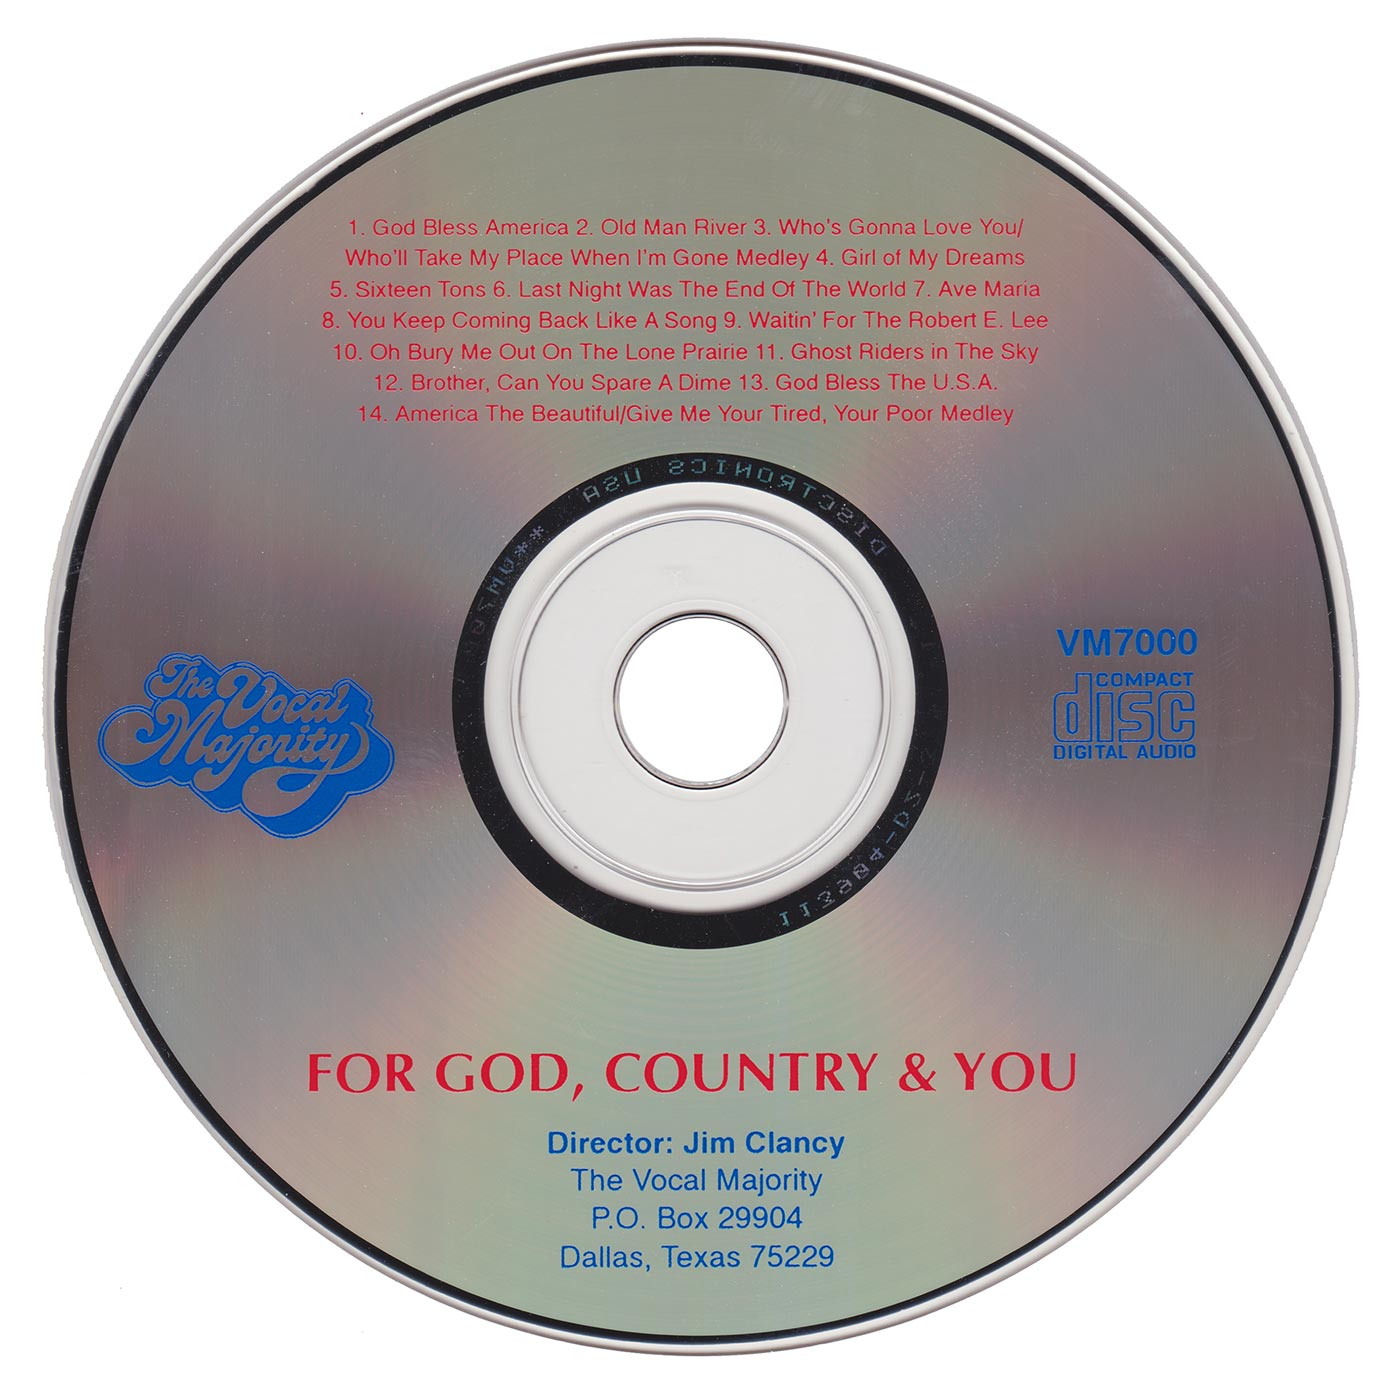 Disc Art: For God, Country, and You